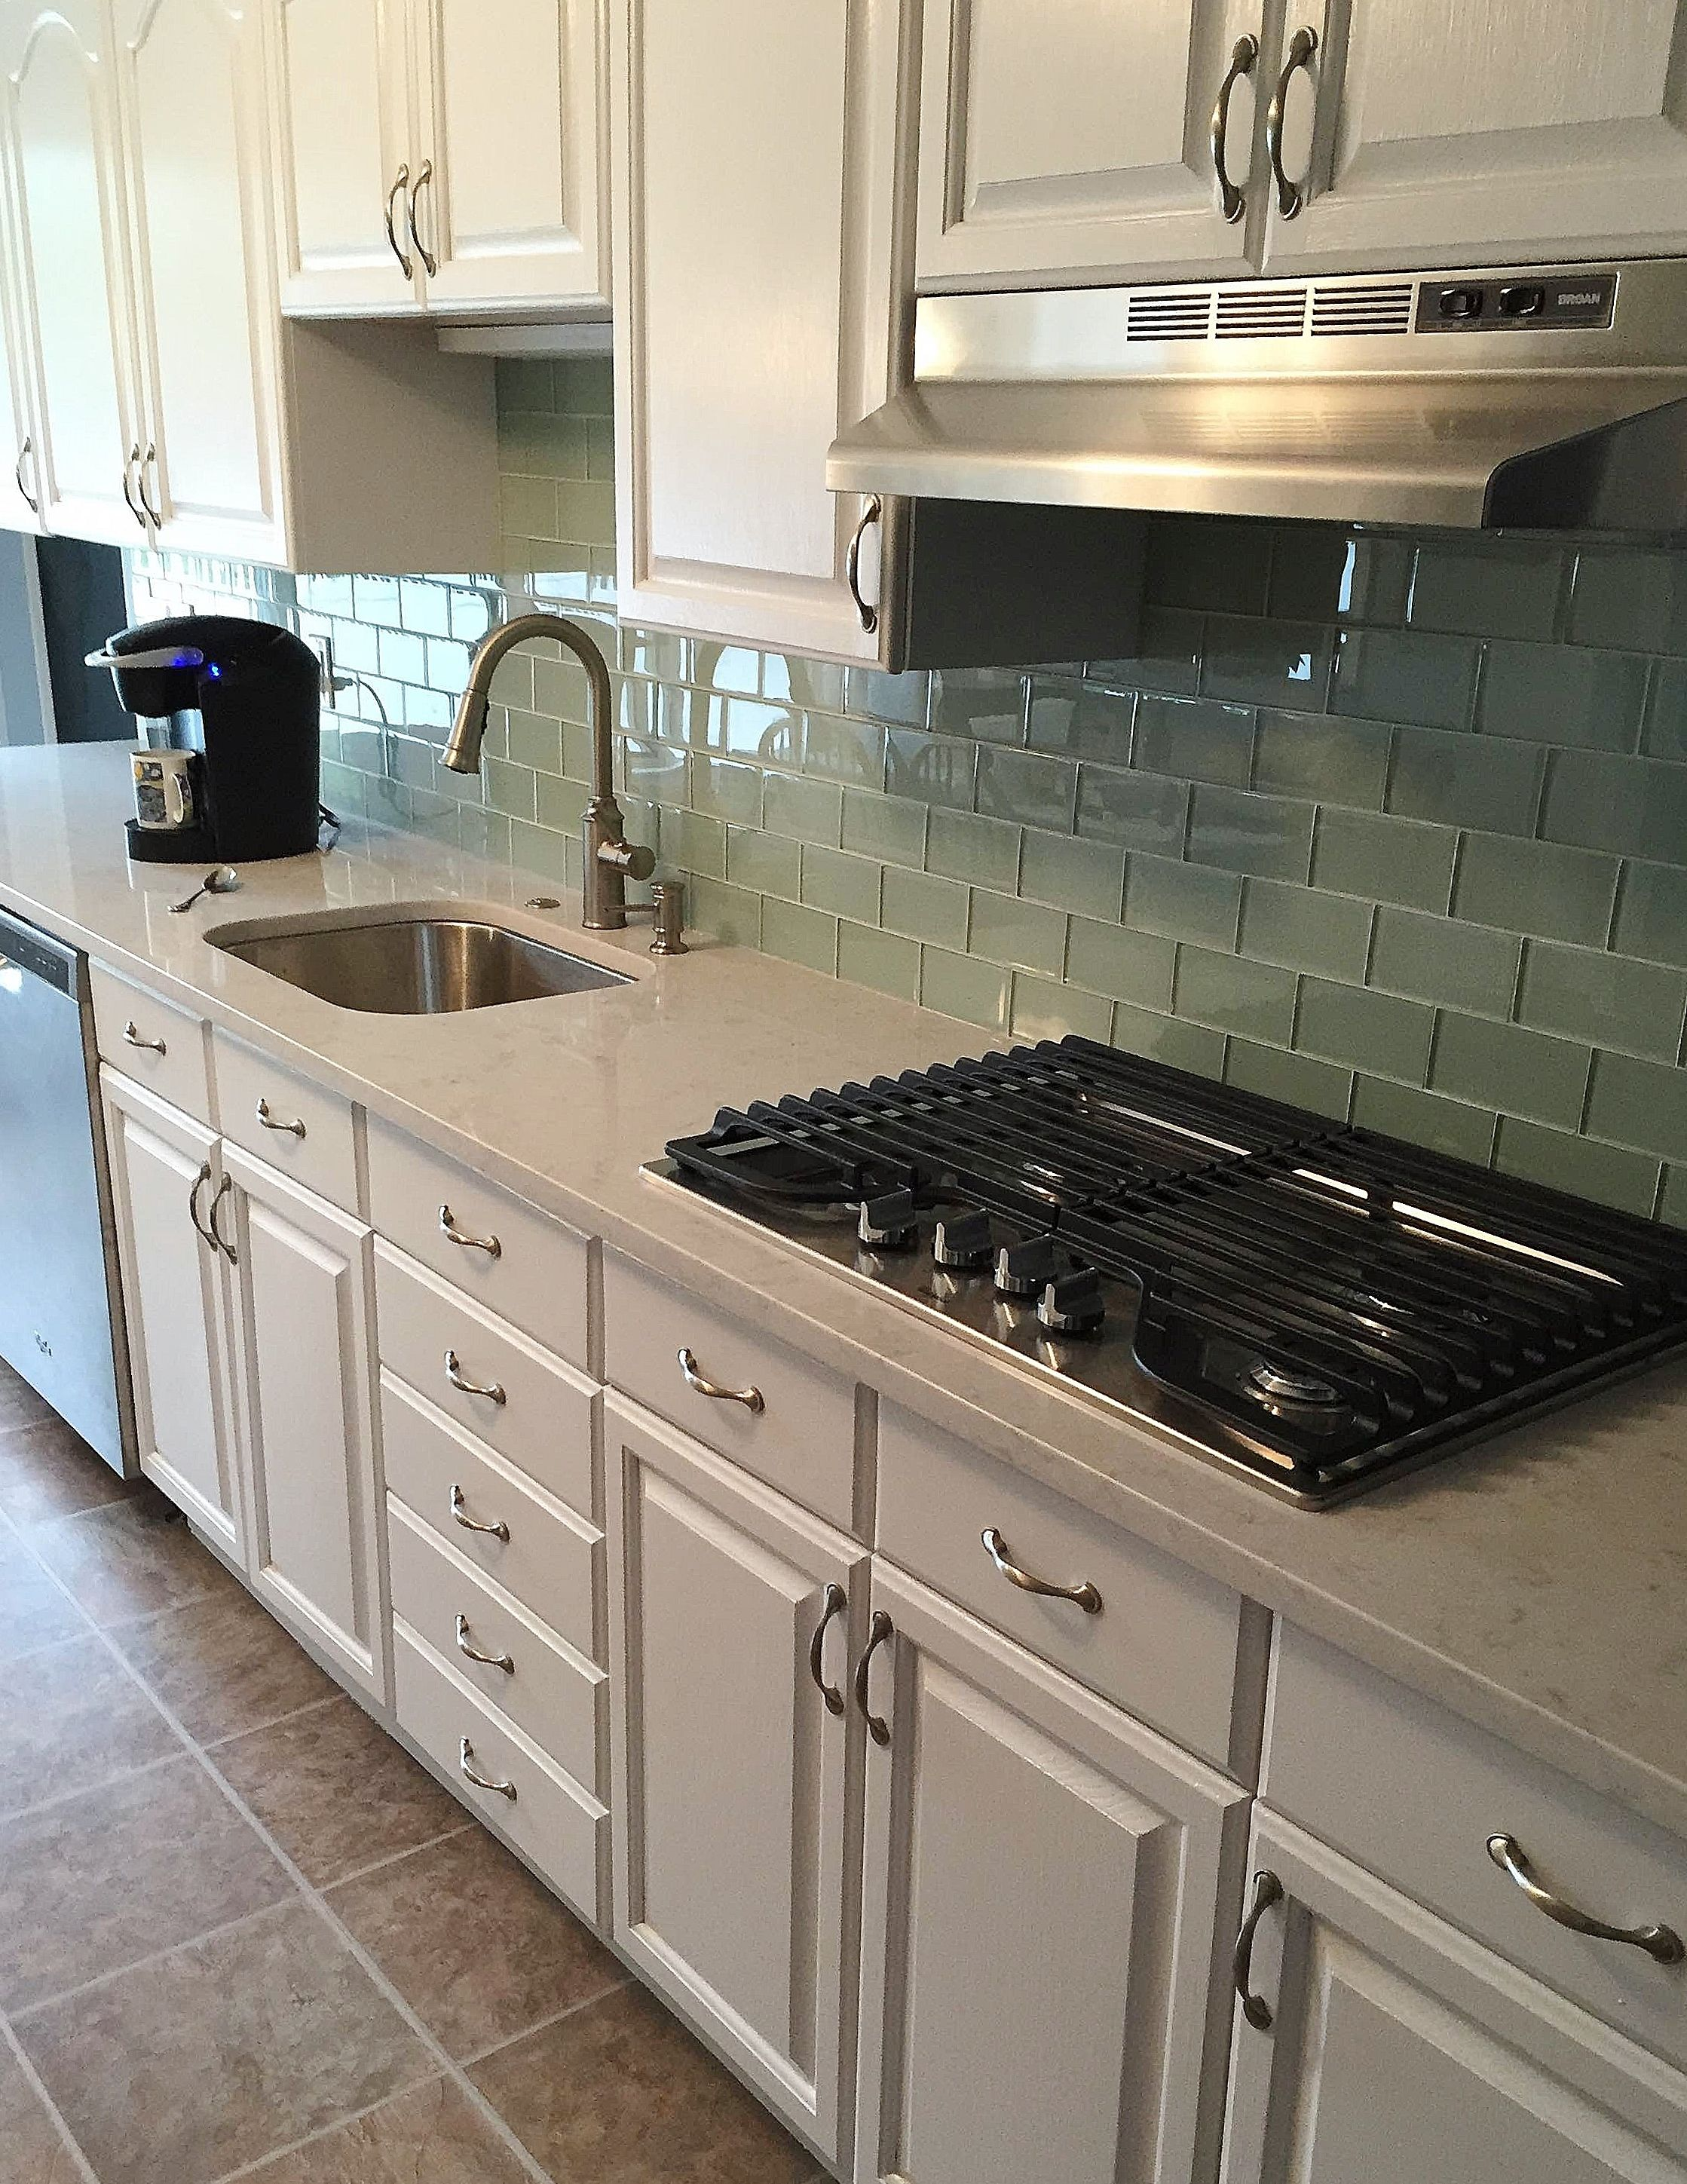 Silestone Lagoon Quartz Countertops With A Soft Blue Gl Tile